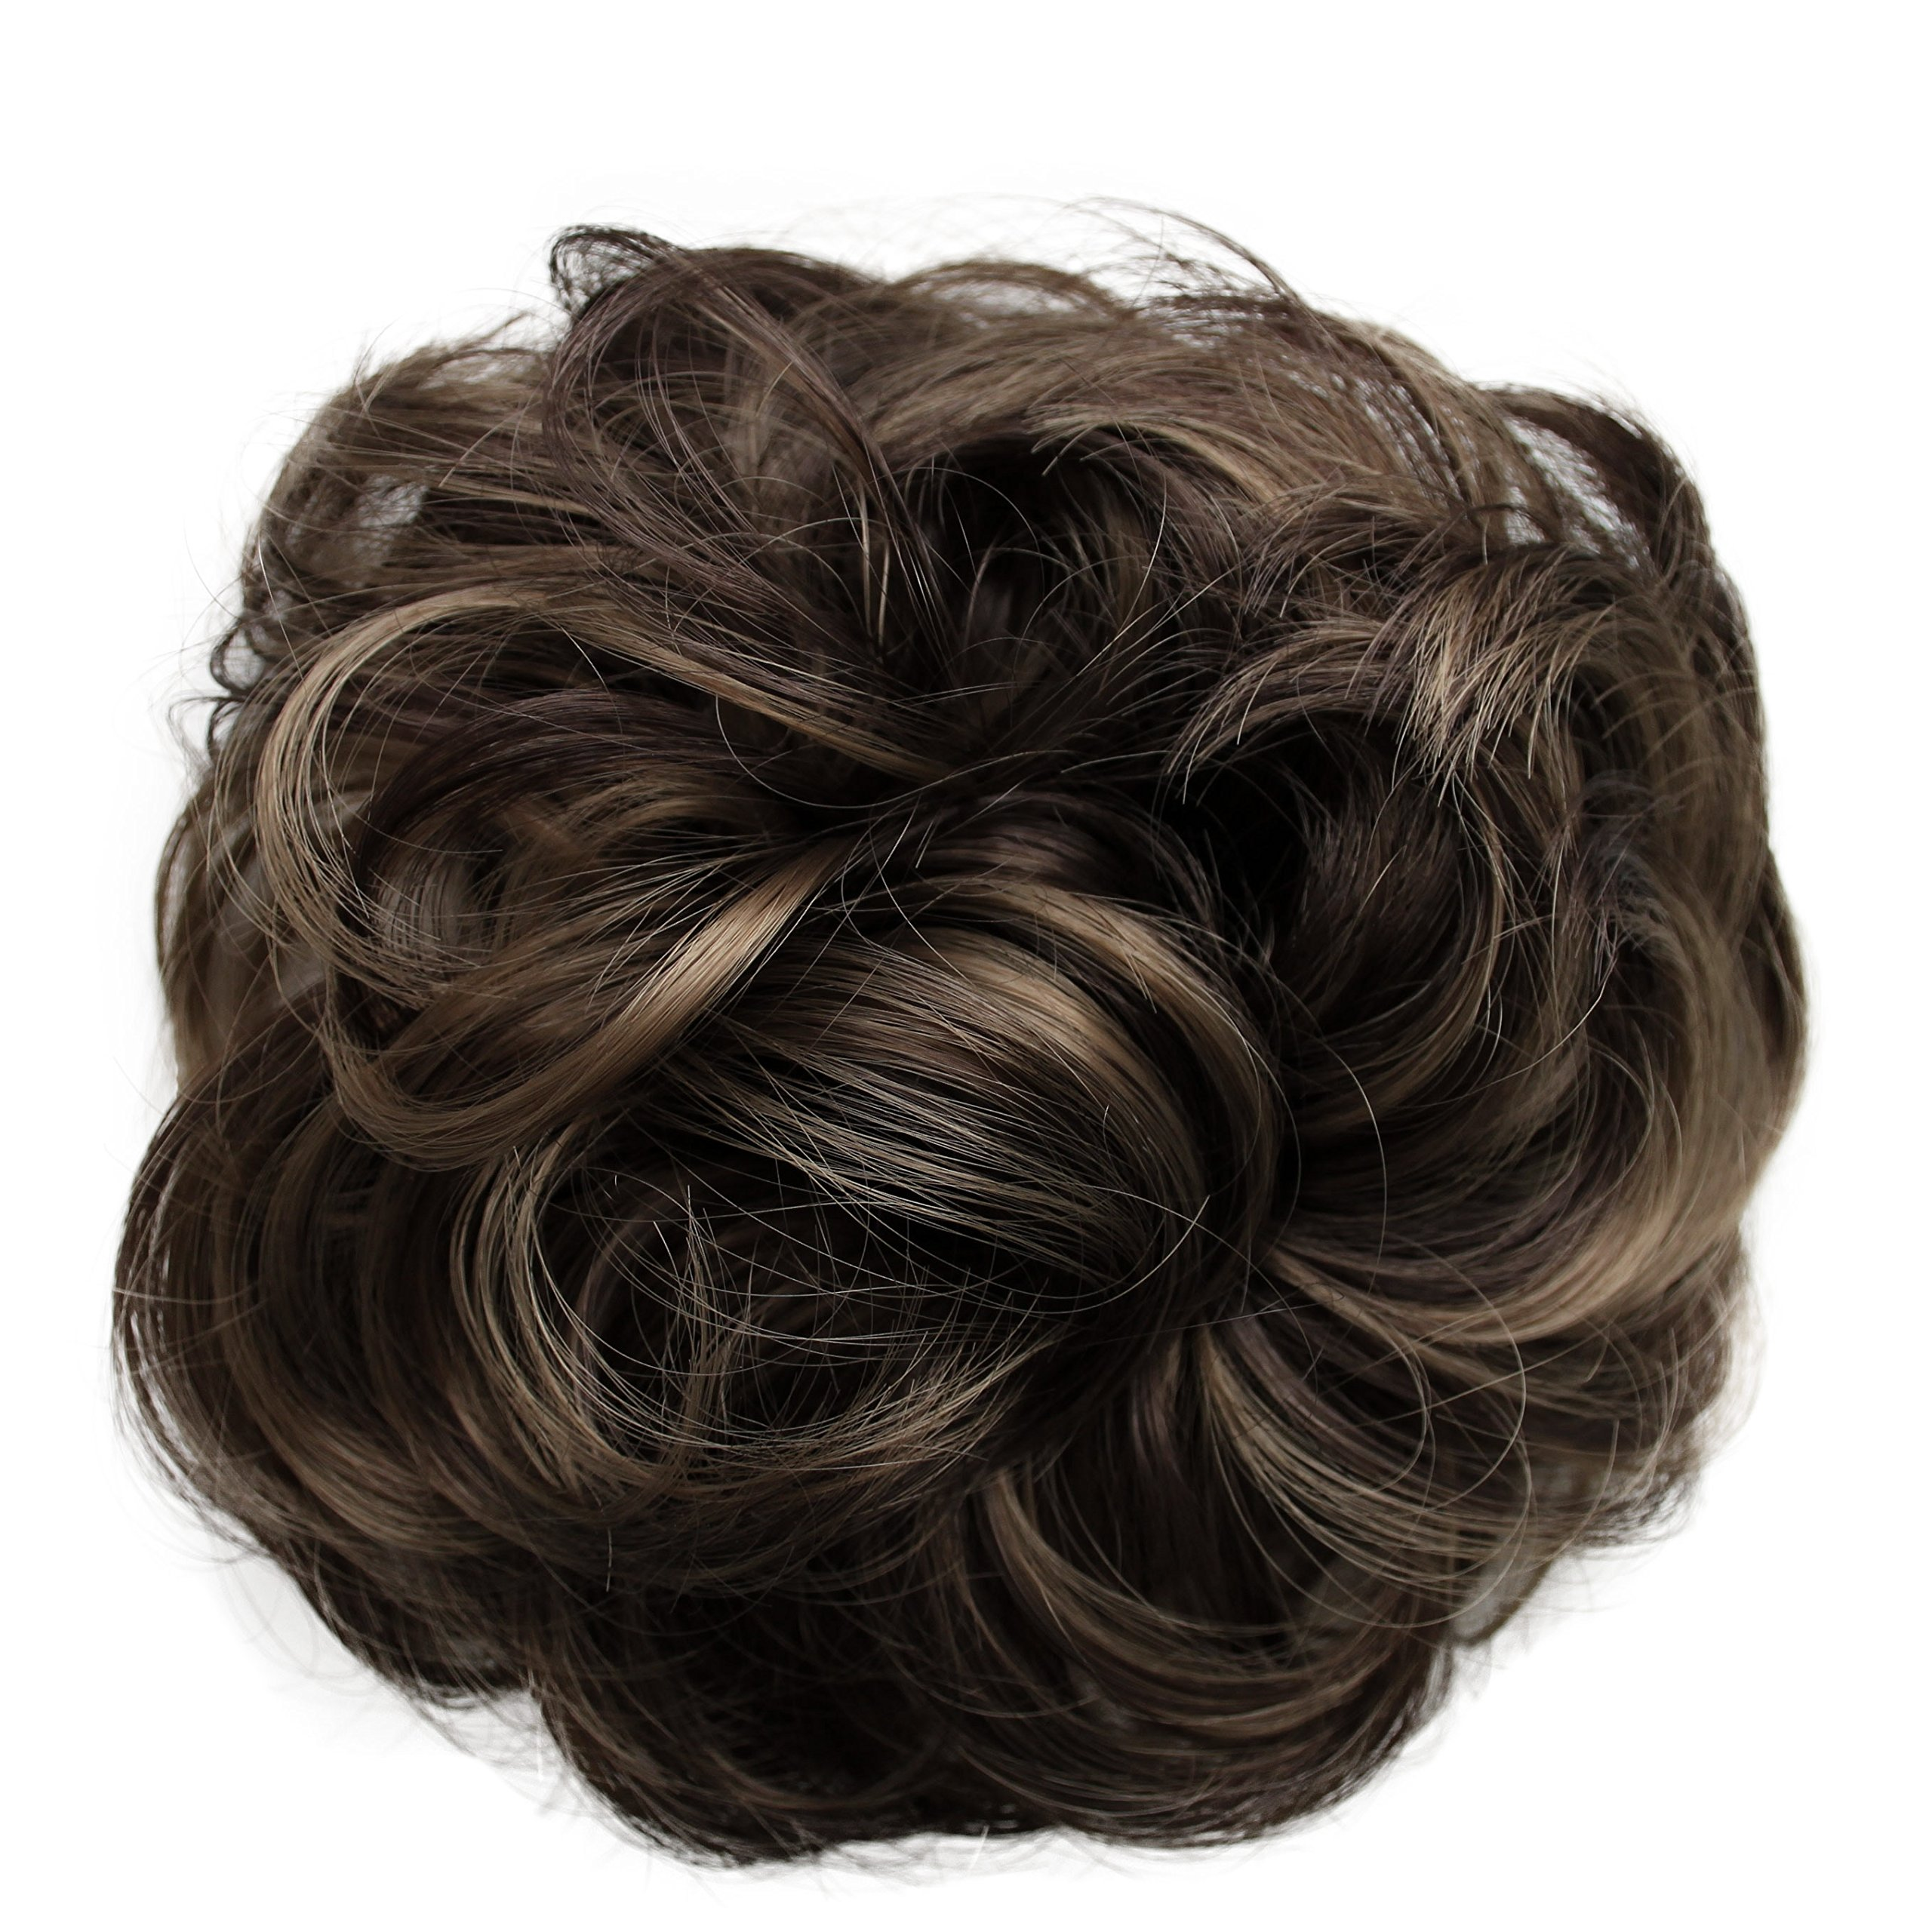 PRETTYSHOP Scrunchie Scrunchy Bun Up Do Hair piece Hair Ribbon Ponytail Extensions Wavy Curly or Messy brown mix 32AH12